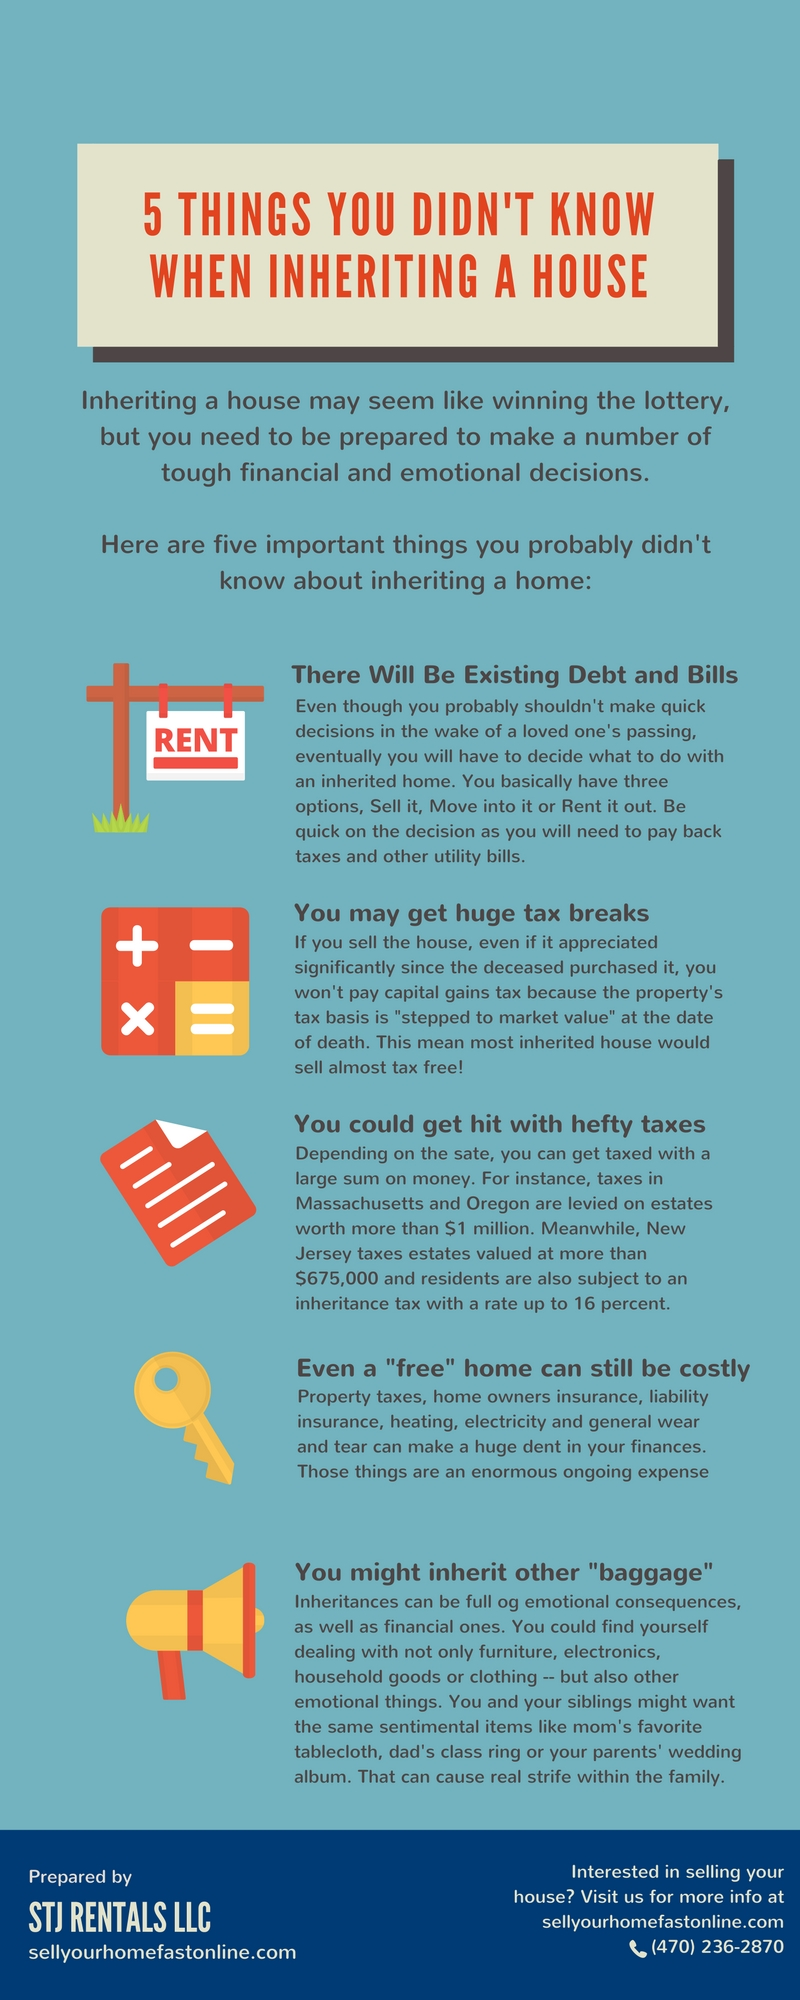 5 things you didn't know when inheriting a house - sell your home